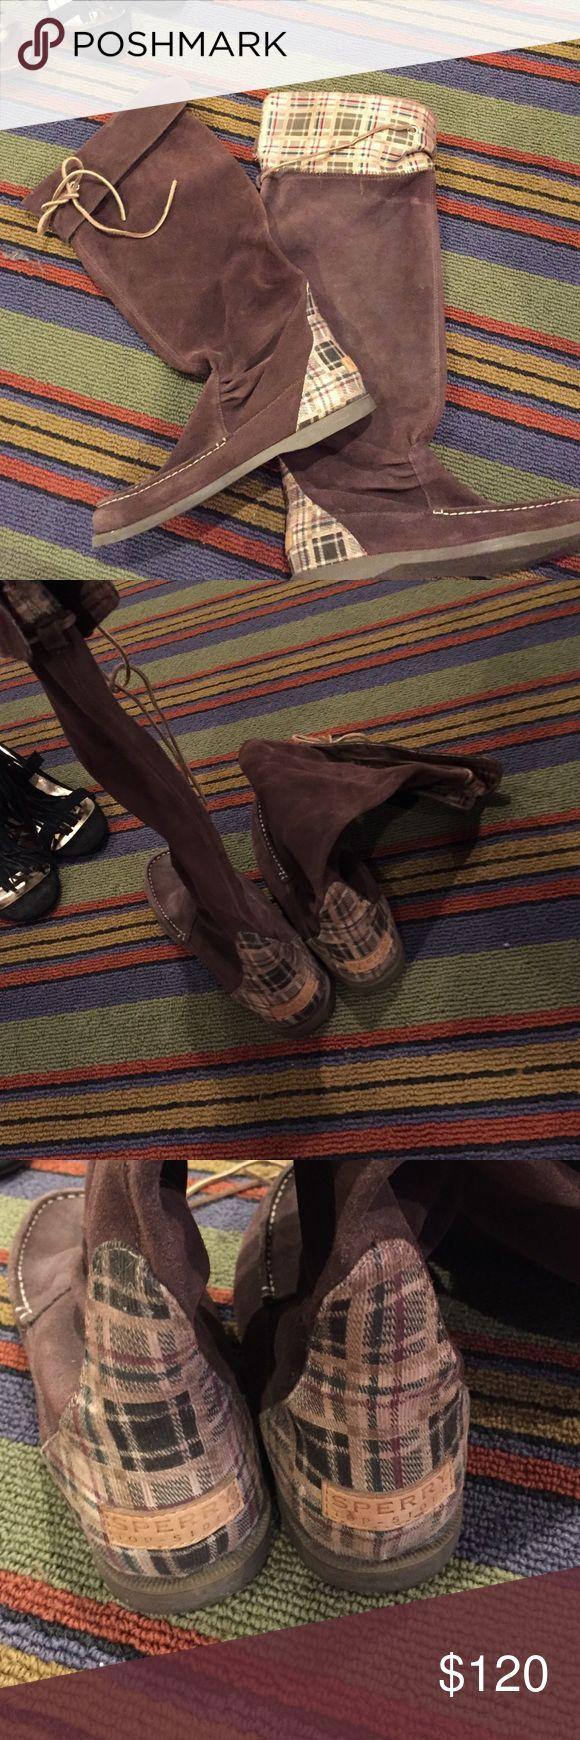 Limited Edition Suede Sperry Top-Sider Boots worn once or twice -- perfect condition. Leather upper. No longer made. Cute pattern on heels and under flaps. Adjustable calf. Flap can be unfolded for over the knee look Sperry Top-Sider Shoes Winter & Rain Boots